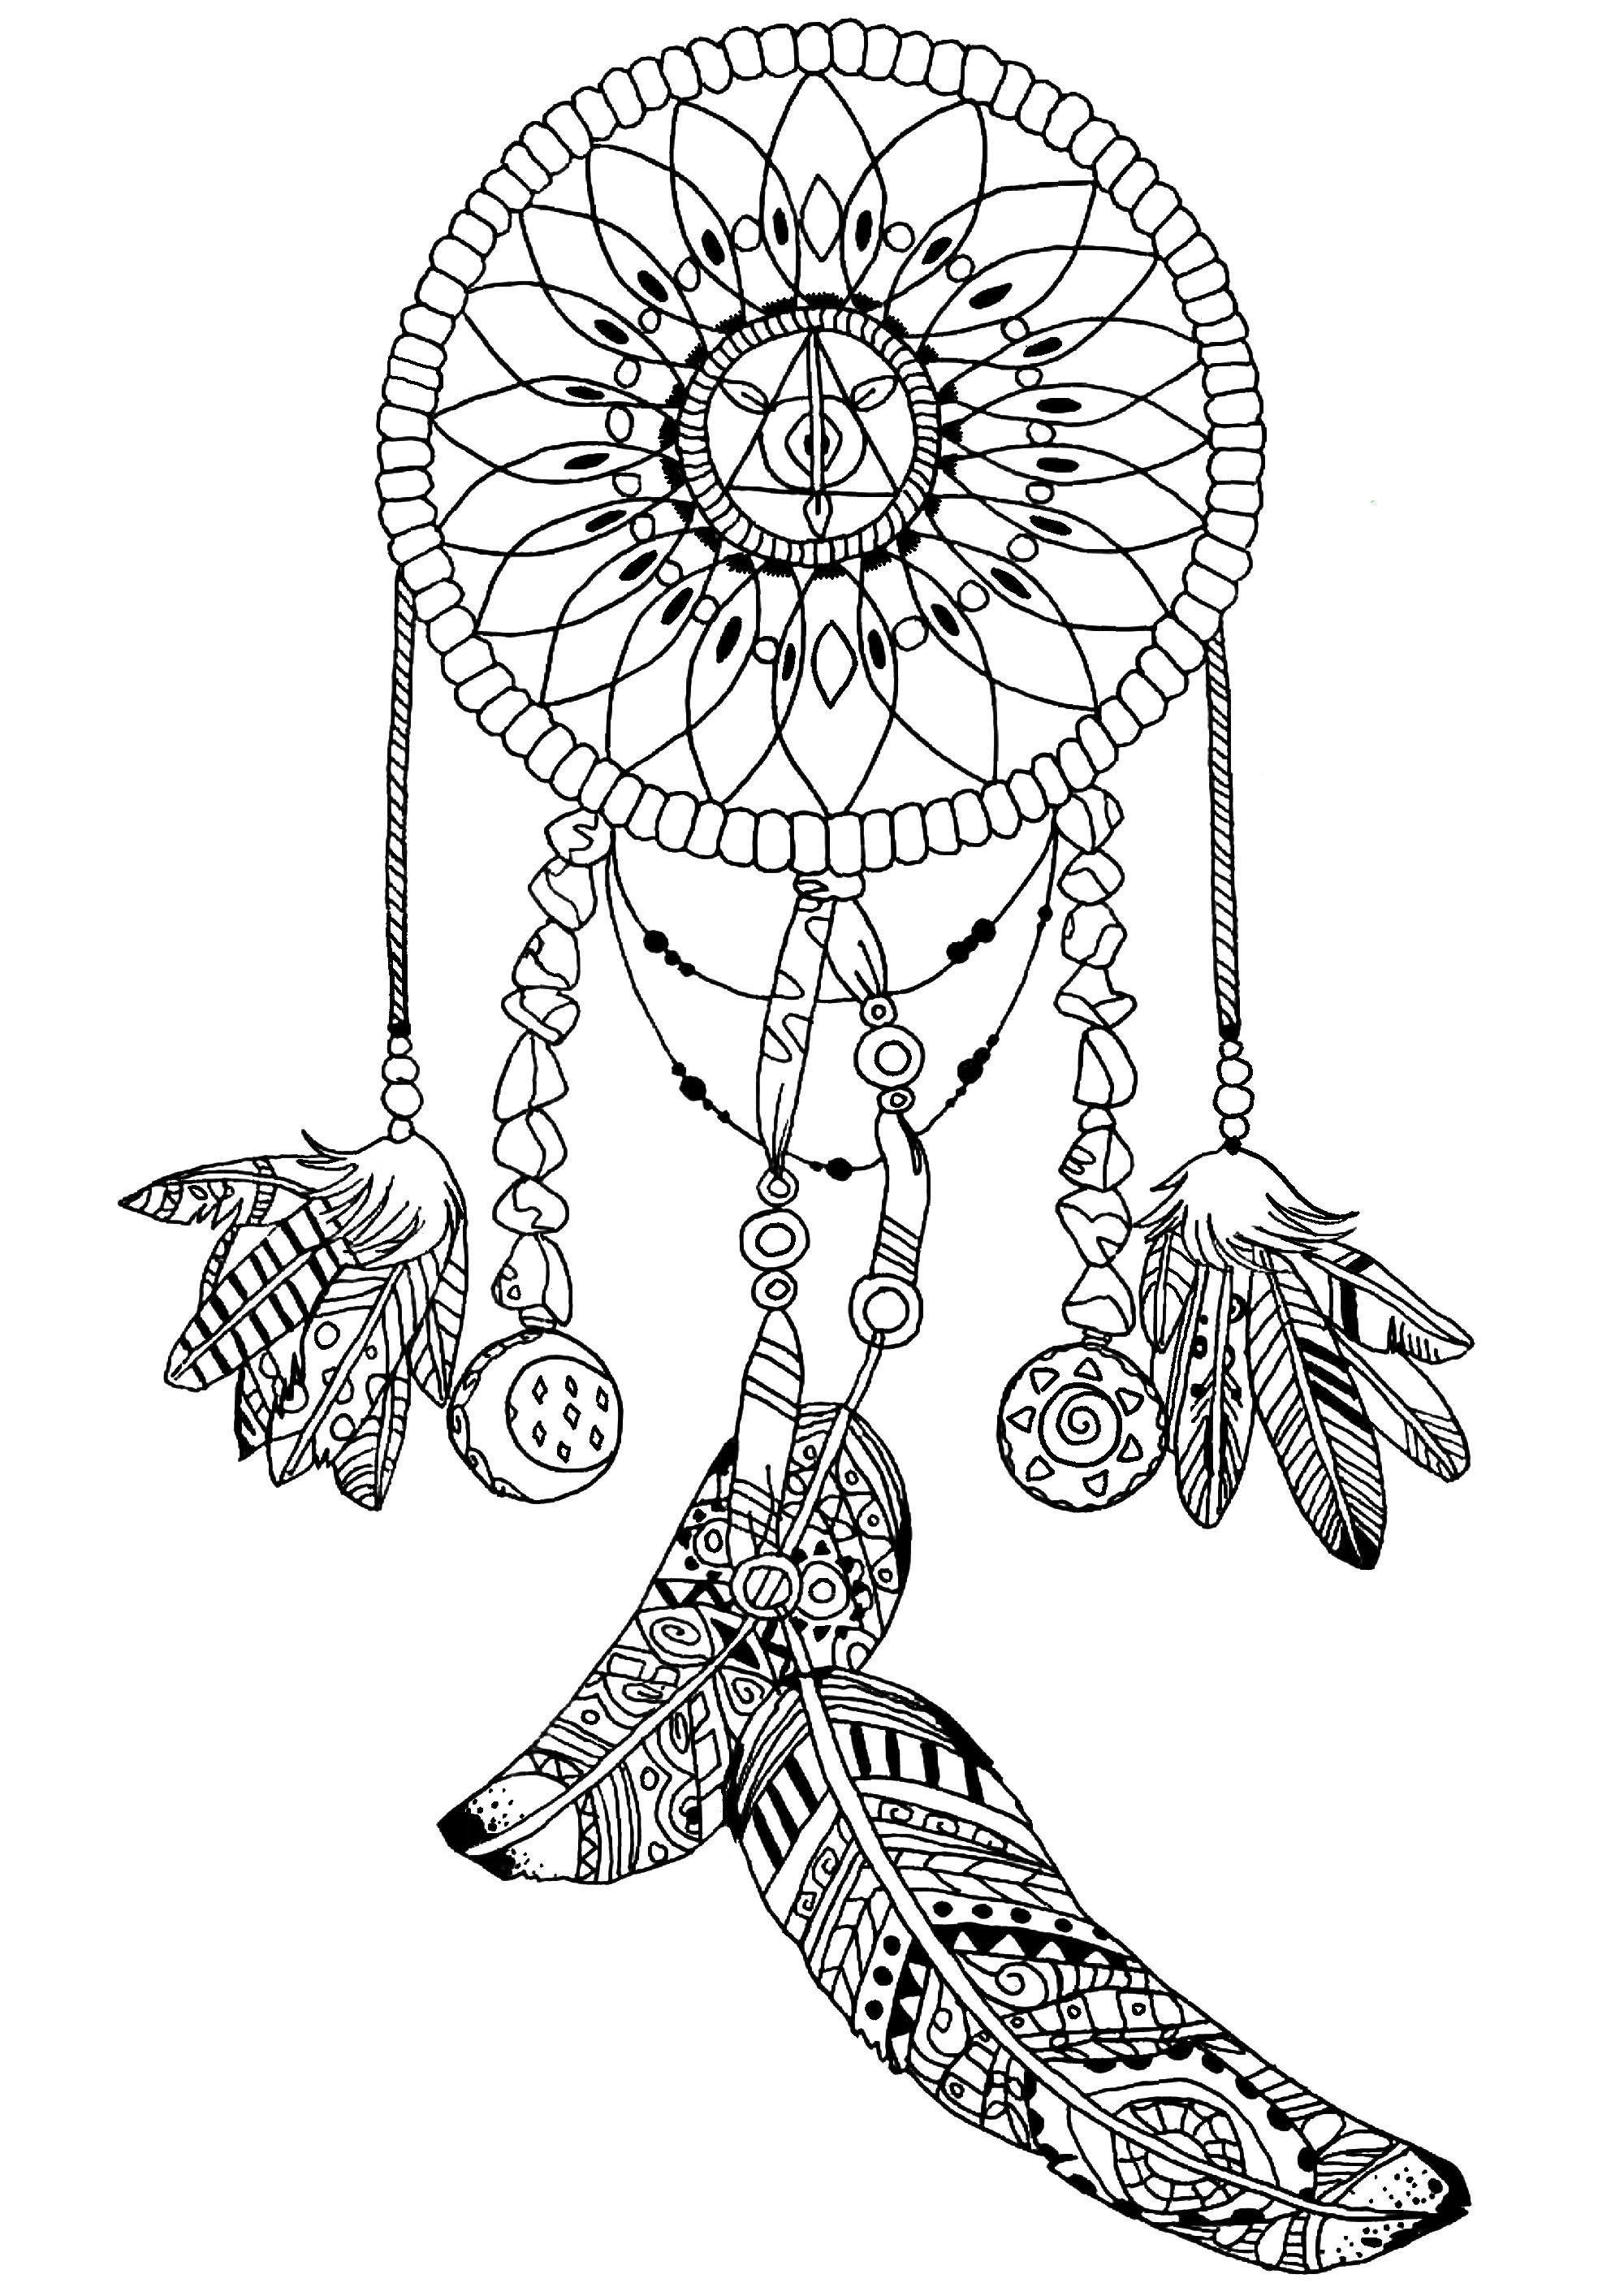 2000x2827 Beautiful Dreamcatcher To Printfrom The Gallery Zen Anti